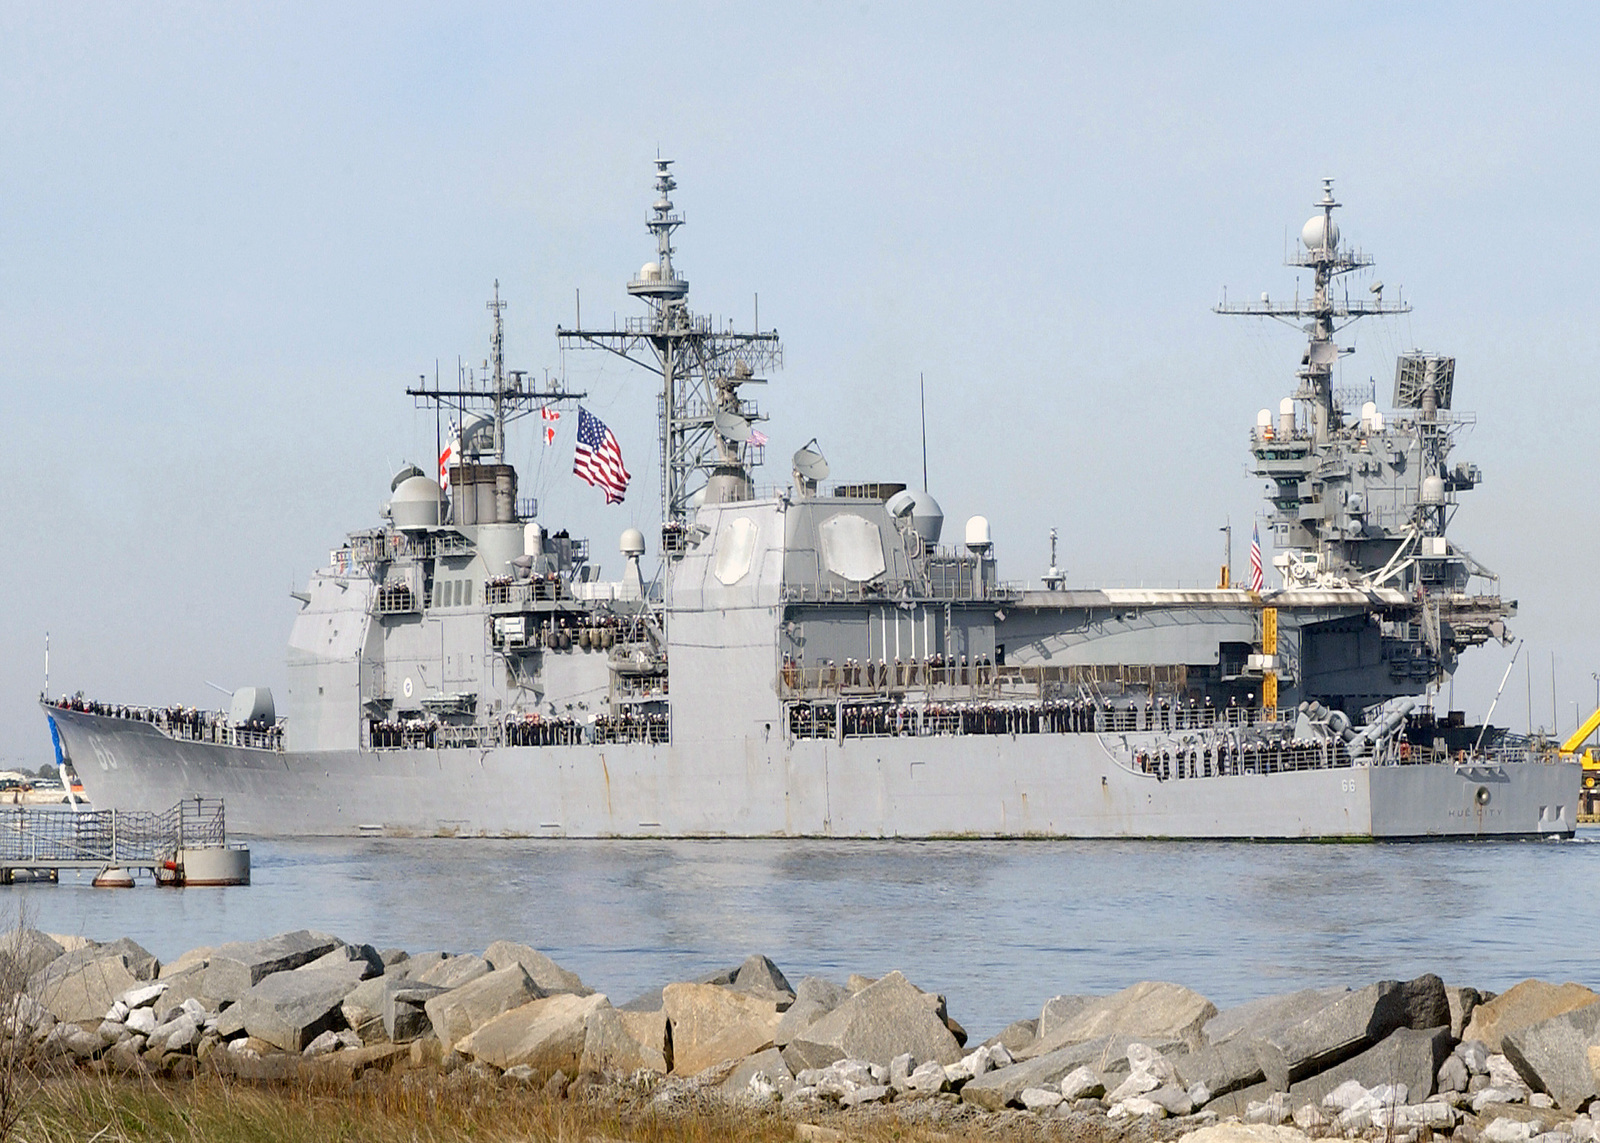 Sailors man the rails of the US Navy (USN) Ticonderoga Class Guided Missile  Cruiser USS HUE